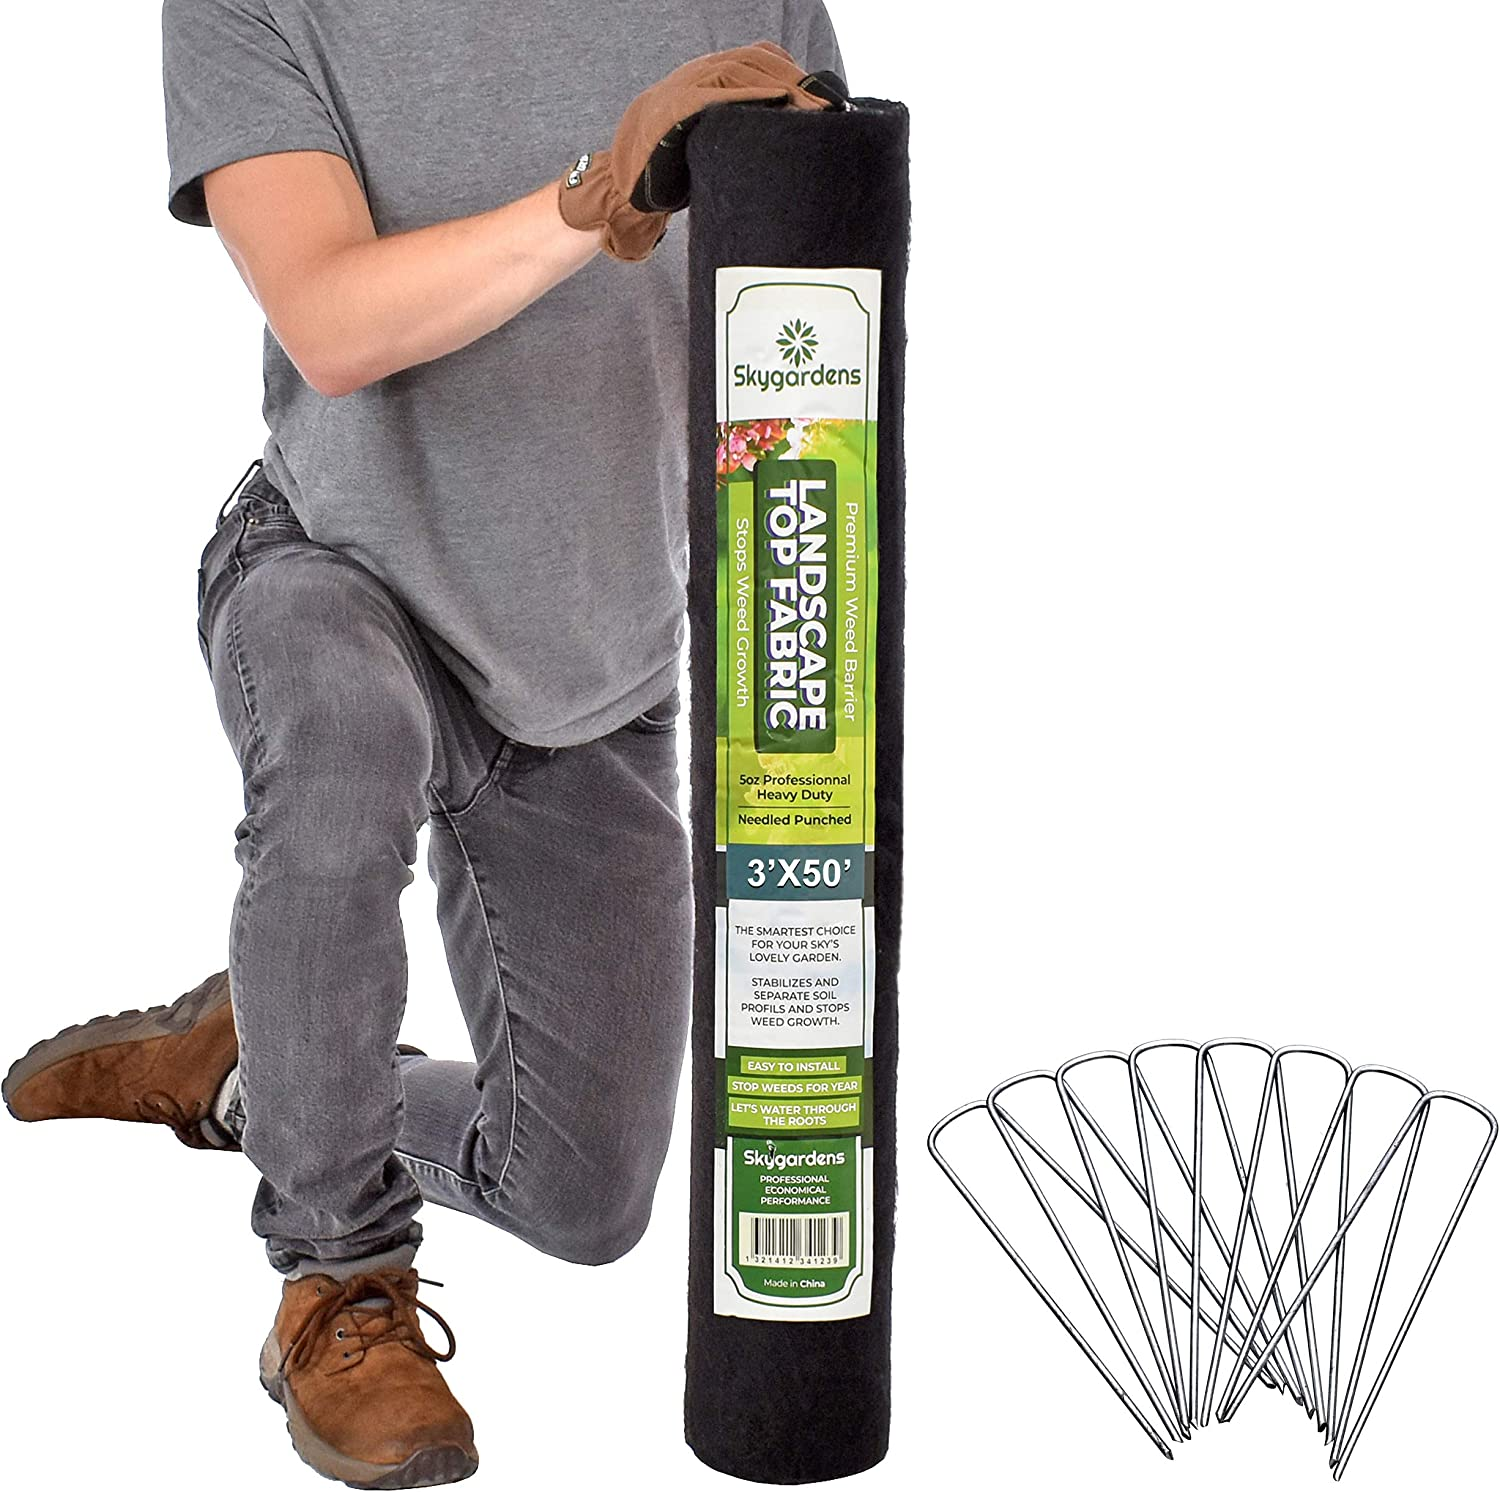 Skygardens Landscape Fabric and 25 Ground Stakes Kit 3ft x 50ft - 5 oz/170 GSM Heavy Duty Weed Barrier Fabric - Premium Weed Control Gardening Solution - Greenhouses - Home Garden